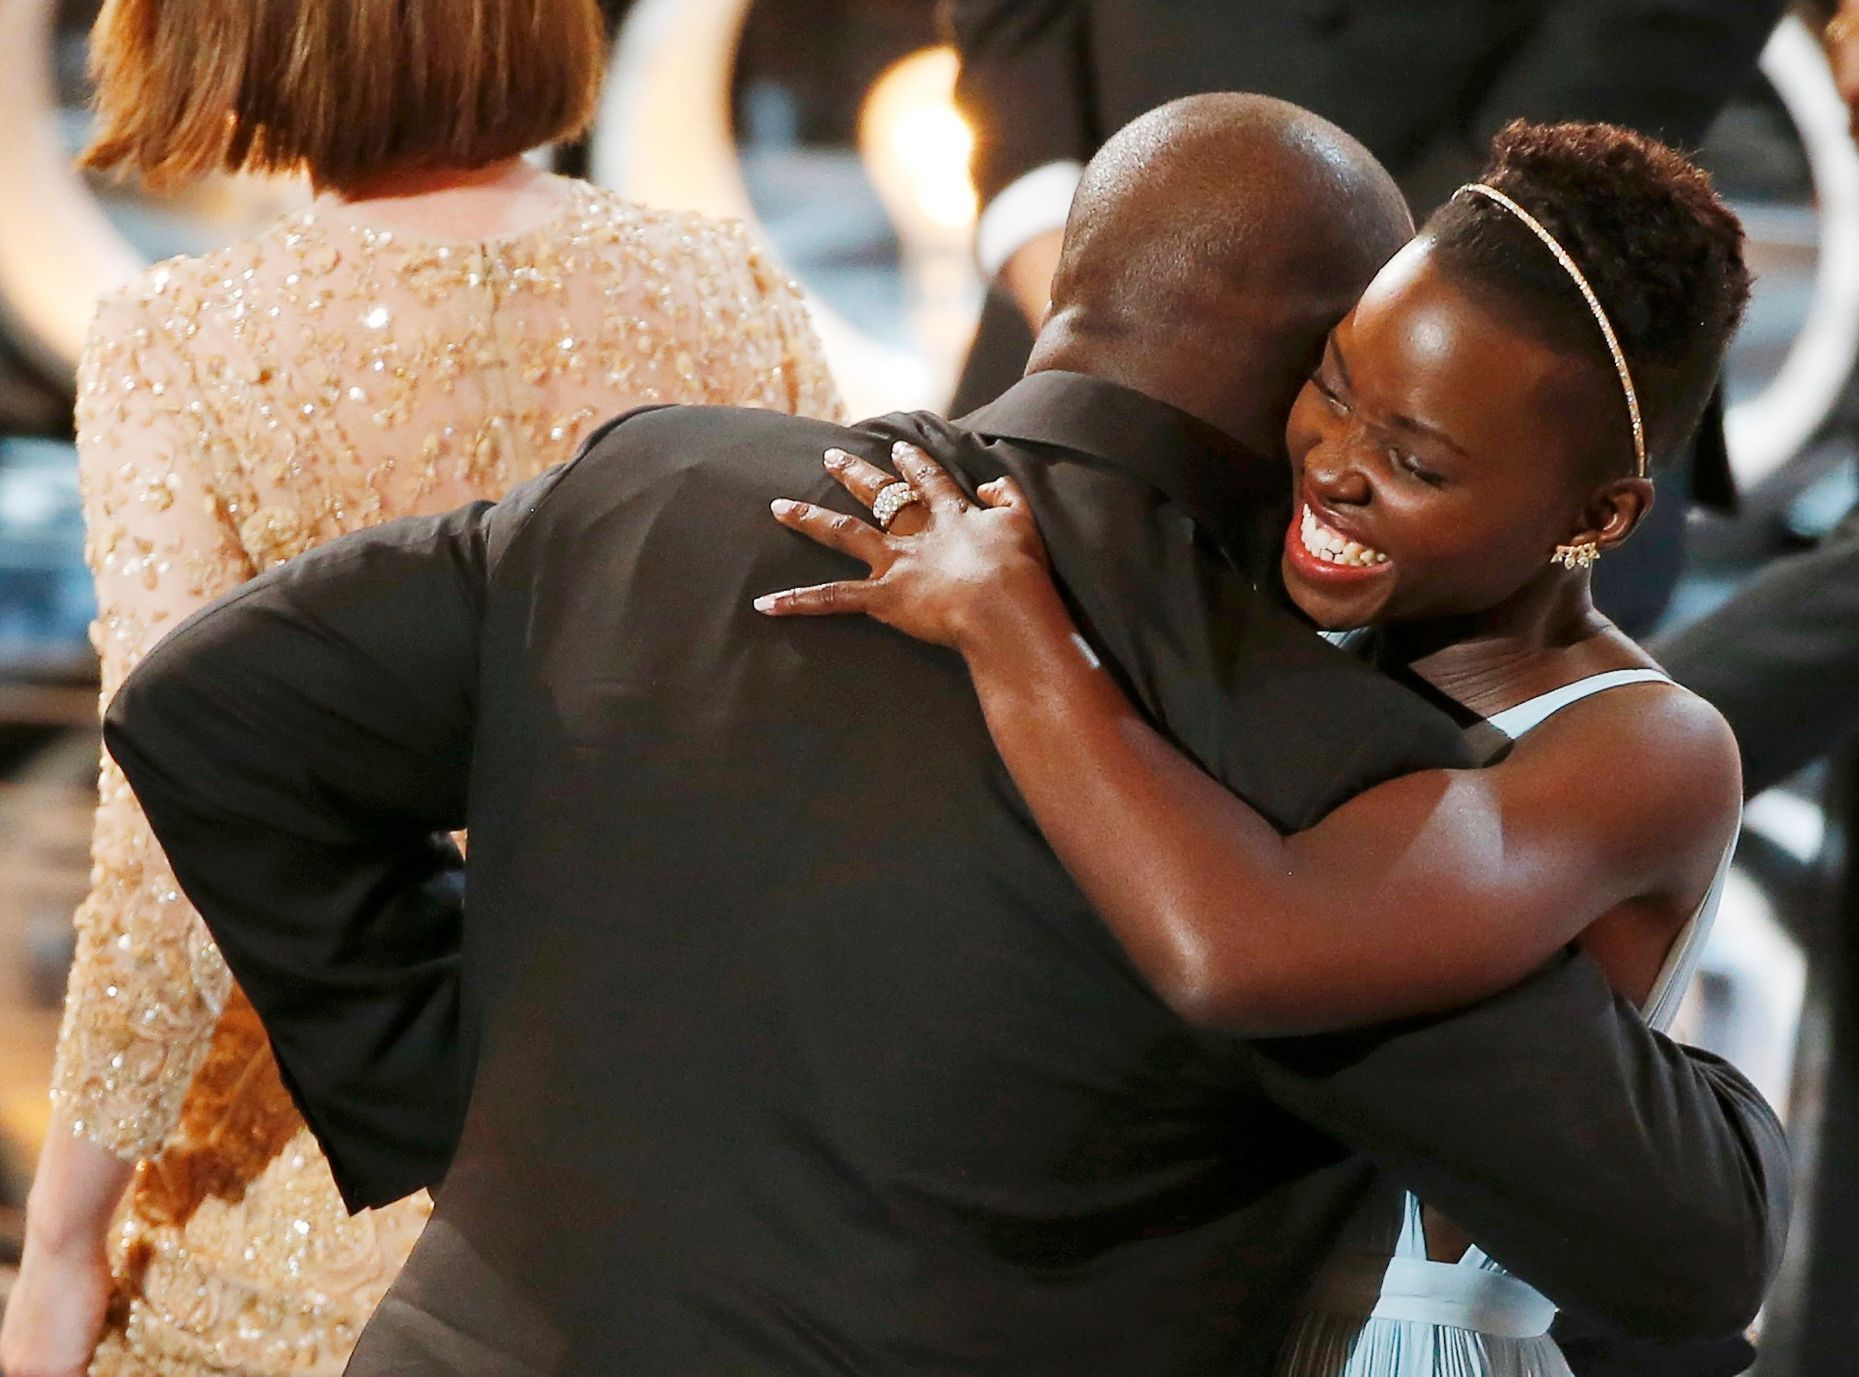 Director and producer McQueen celebrates with the Nyong'o after accepting the Oscar for best picture at the 86th Academy Awards in Hollywood